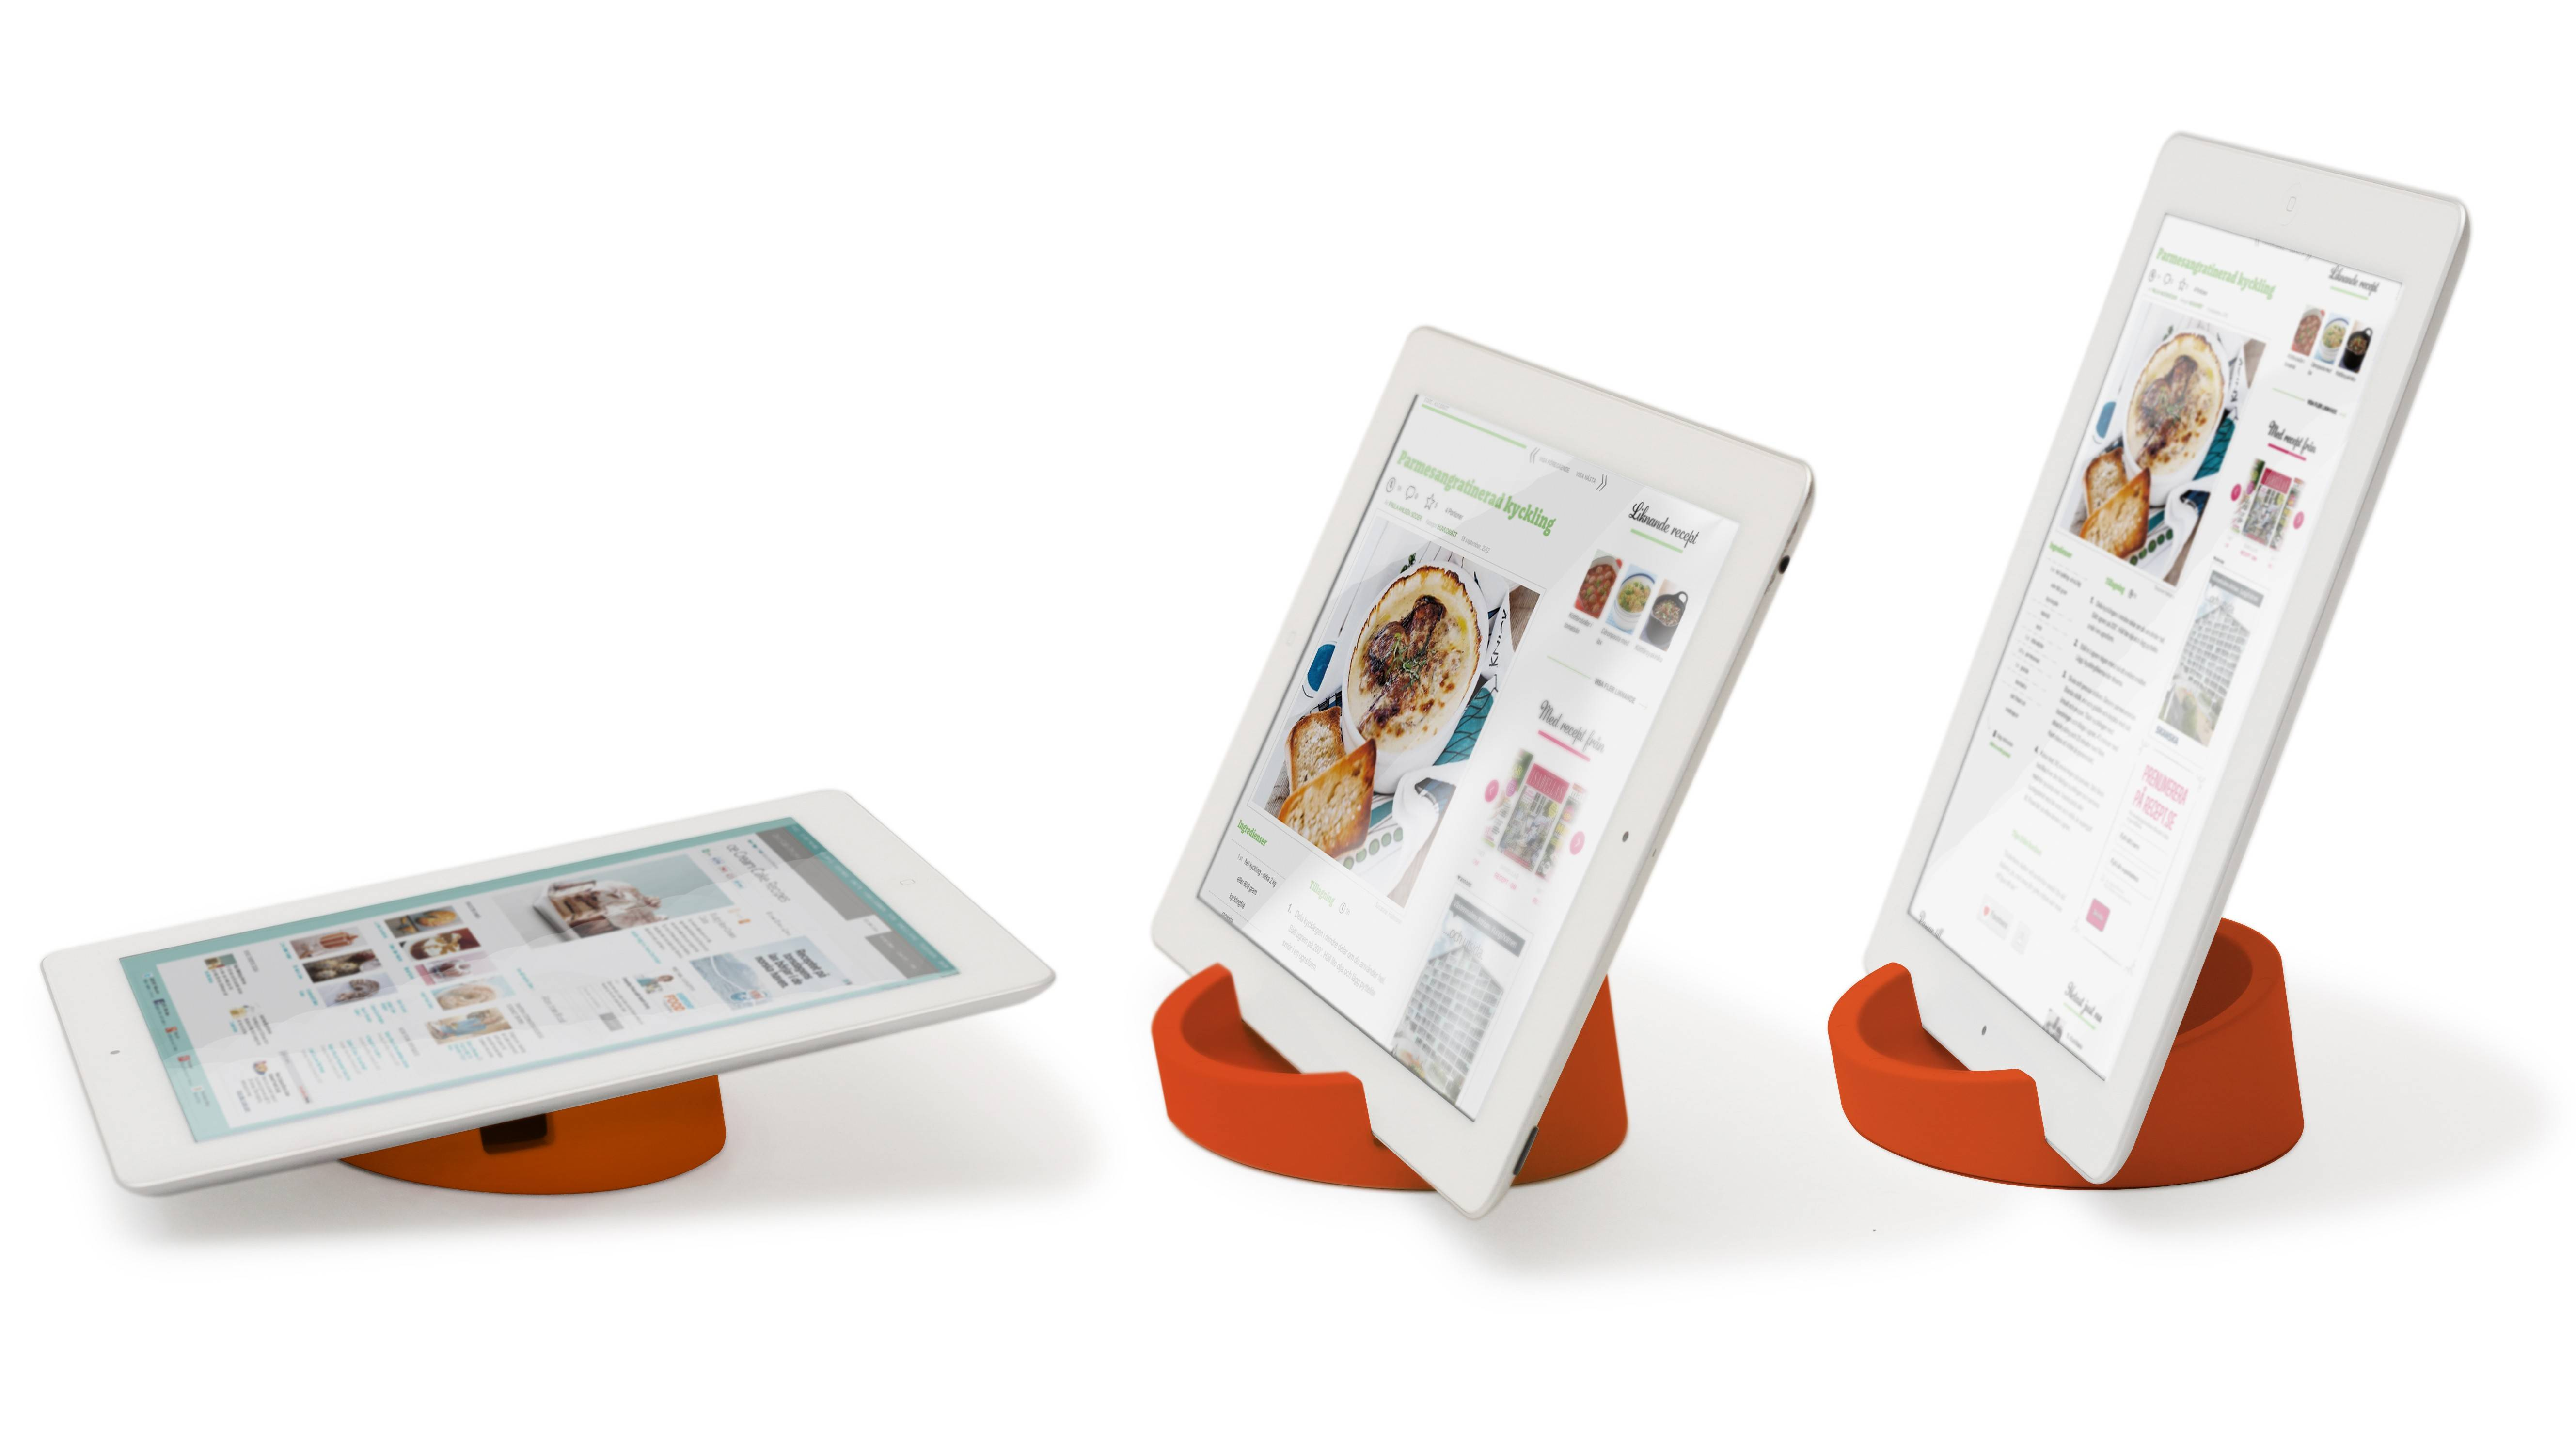 Bosign tablet stands come in handy for reading online recipes in the kitchen.